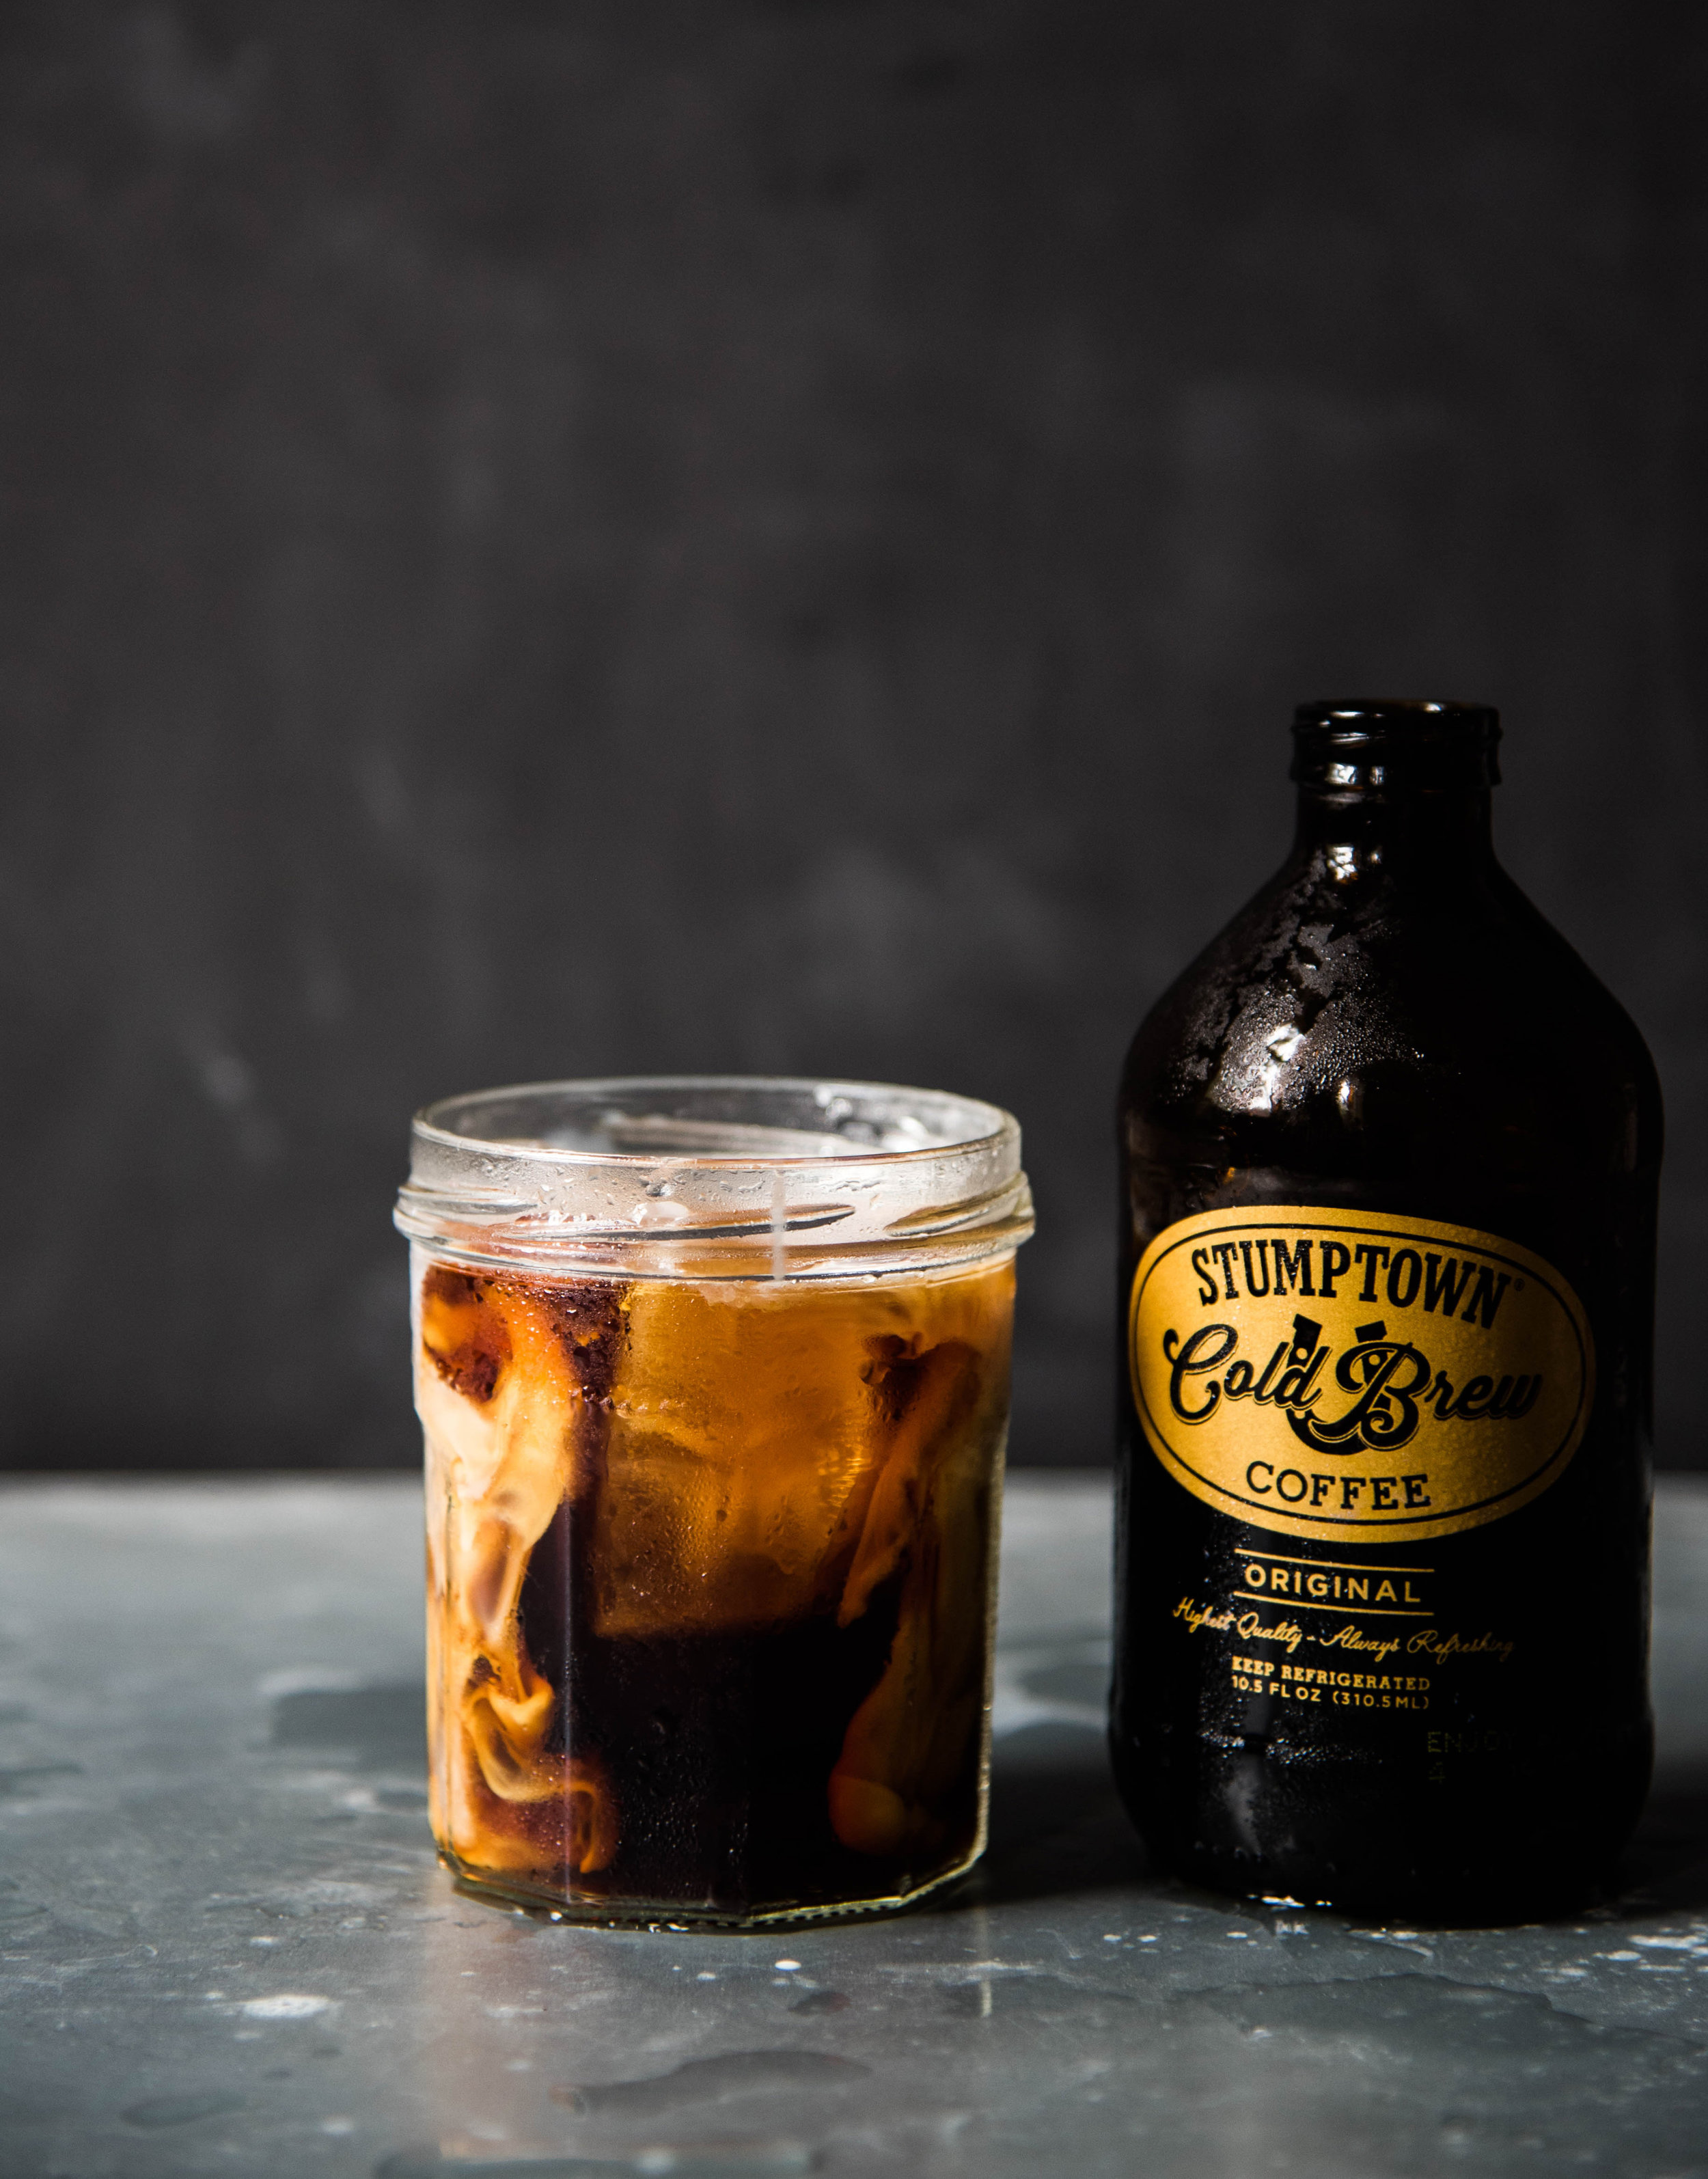 ROSE & IVY Journal Iced Coffee to Cool Down Stumptown Cold Brew